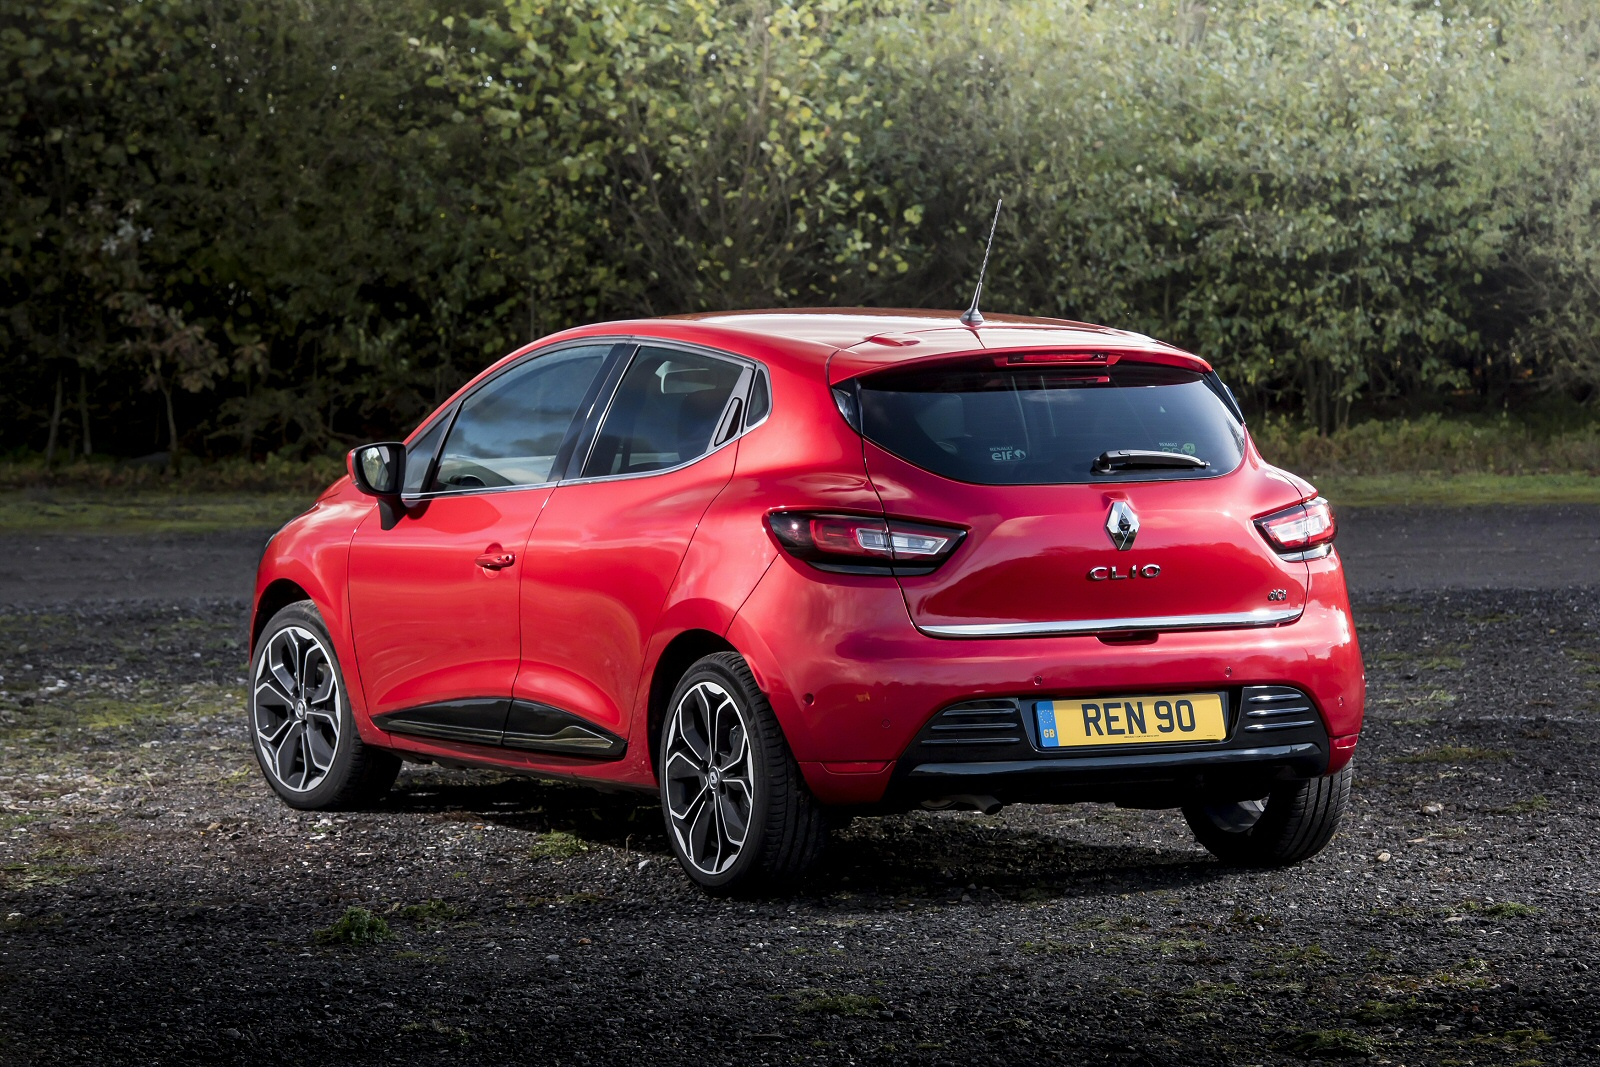 New Renault Clio 0.9 Tce 90 Iconic 5Dr Petrol Hatchback